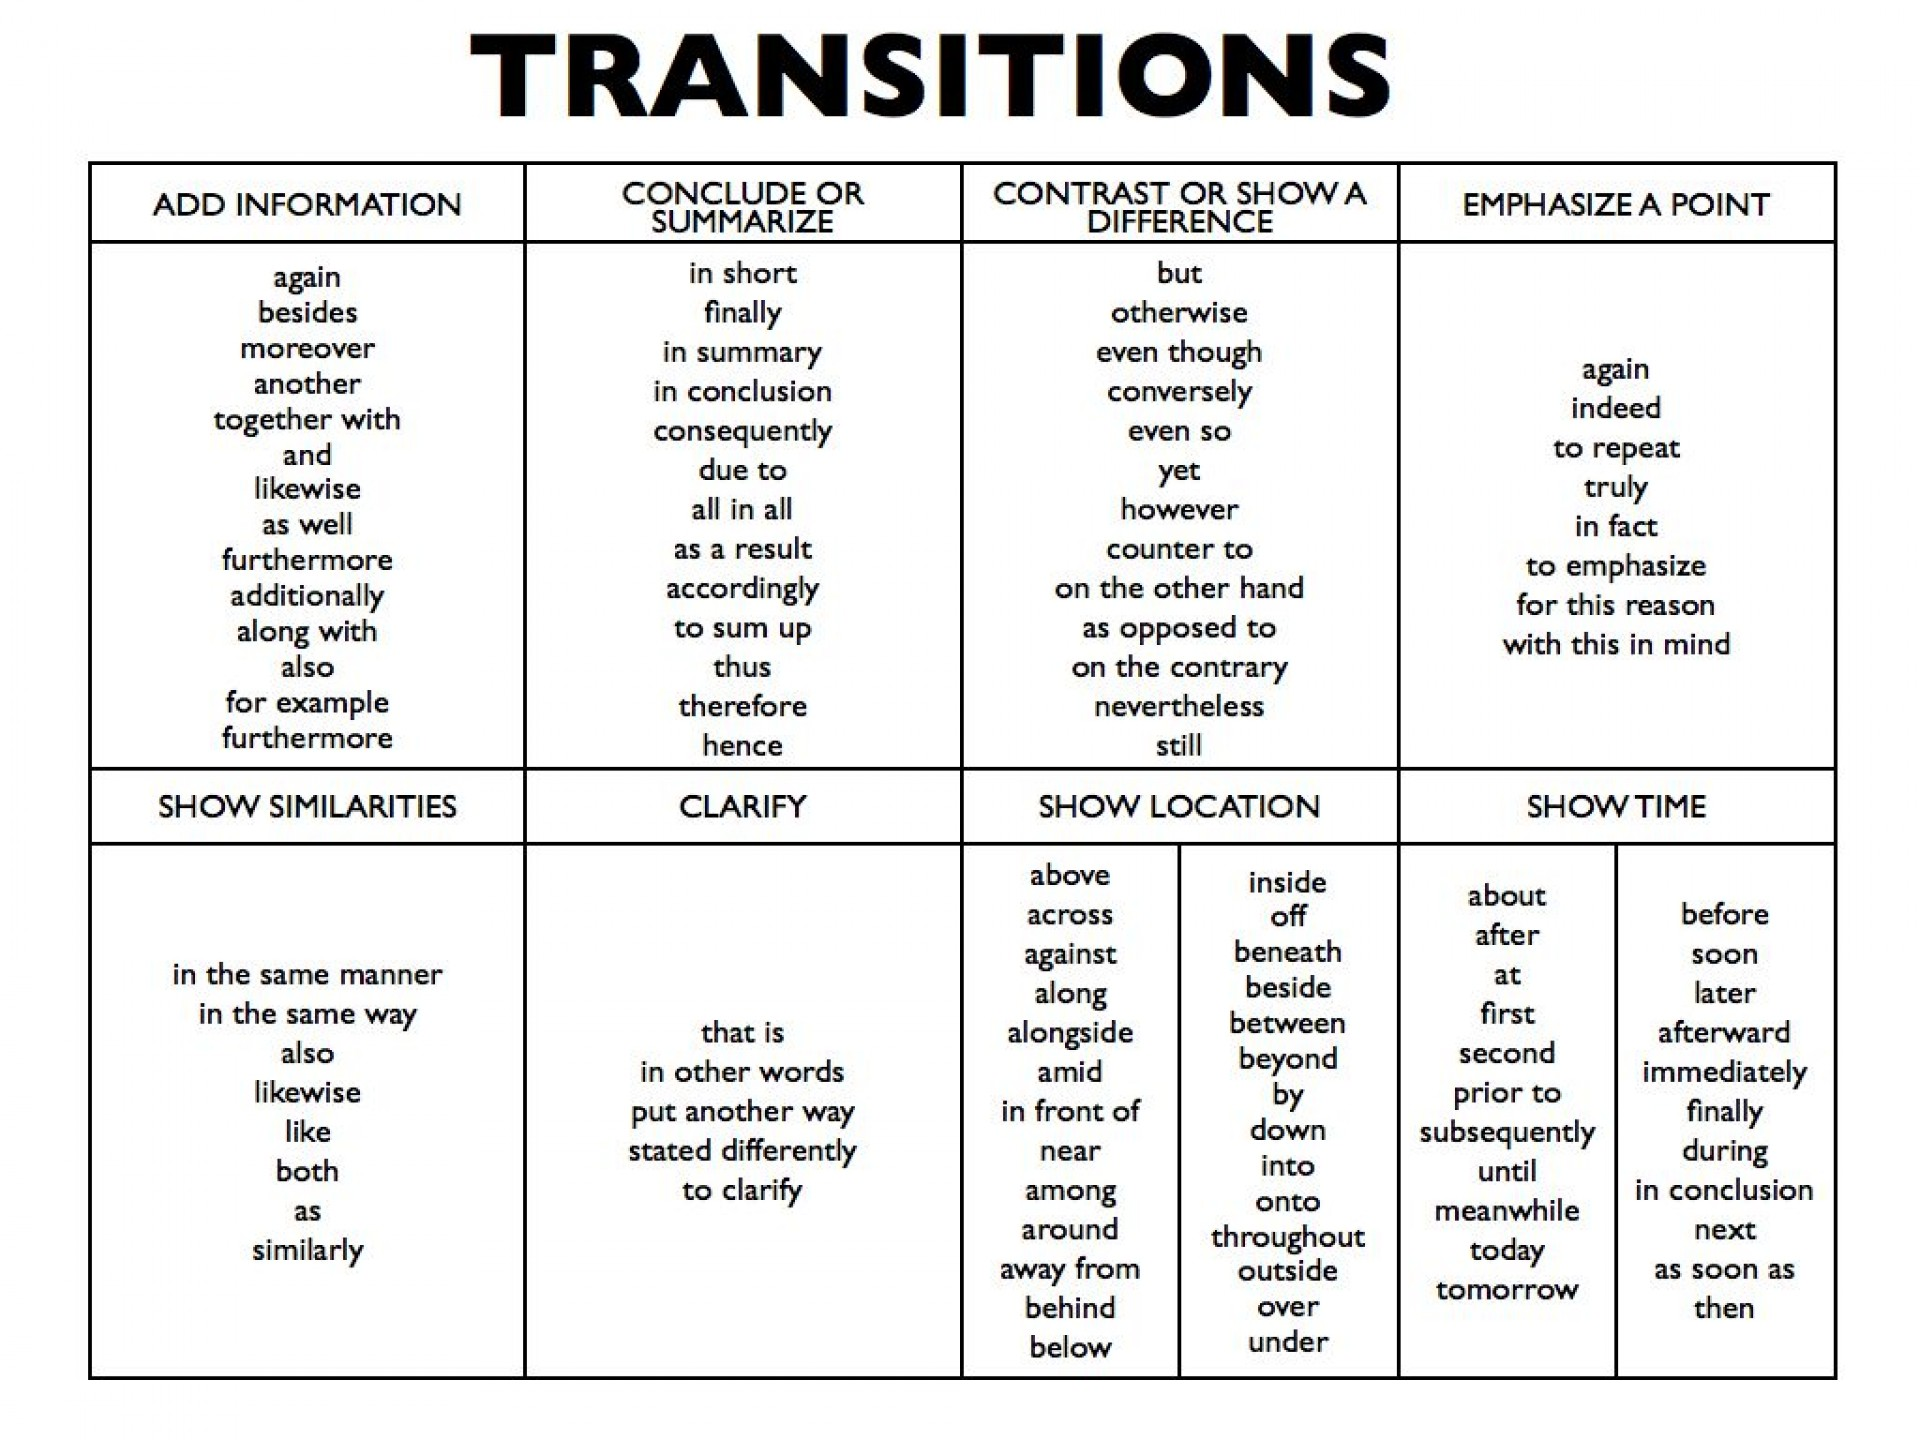 005 Essay Example Transitions 4995883 1 Orig Archaicawful Transition Words List For Contrast Sentence Examples Conclusion In Spanish 1920